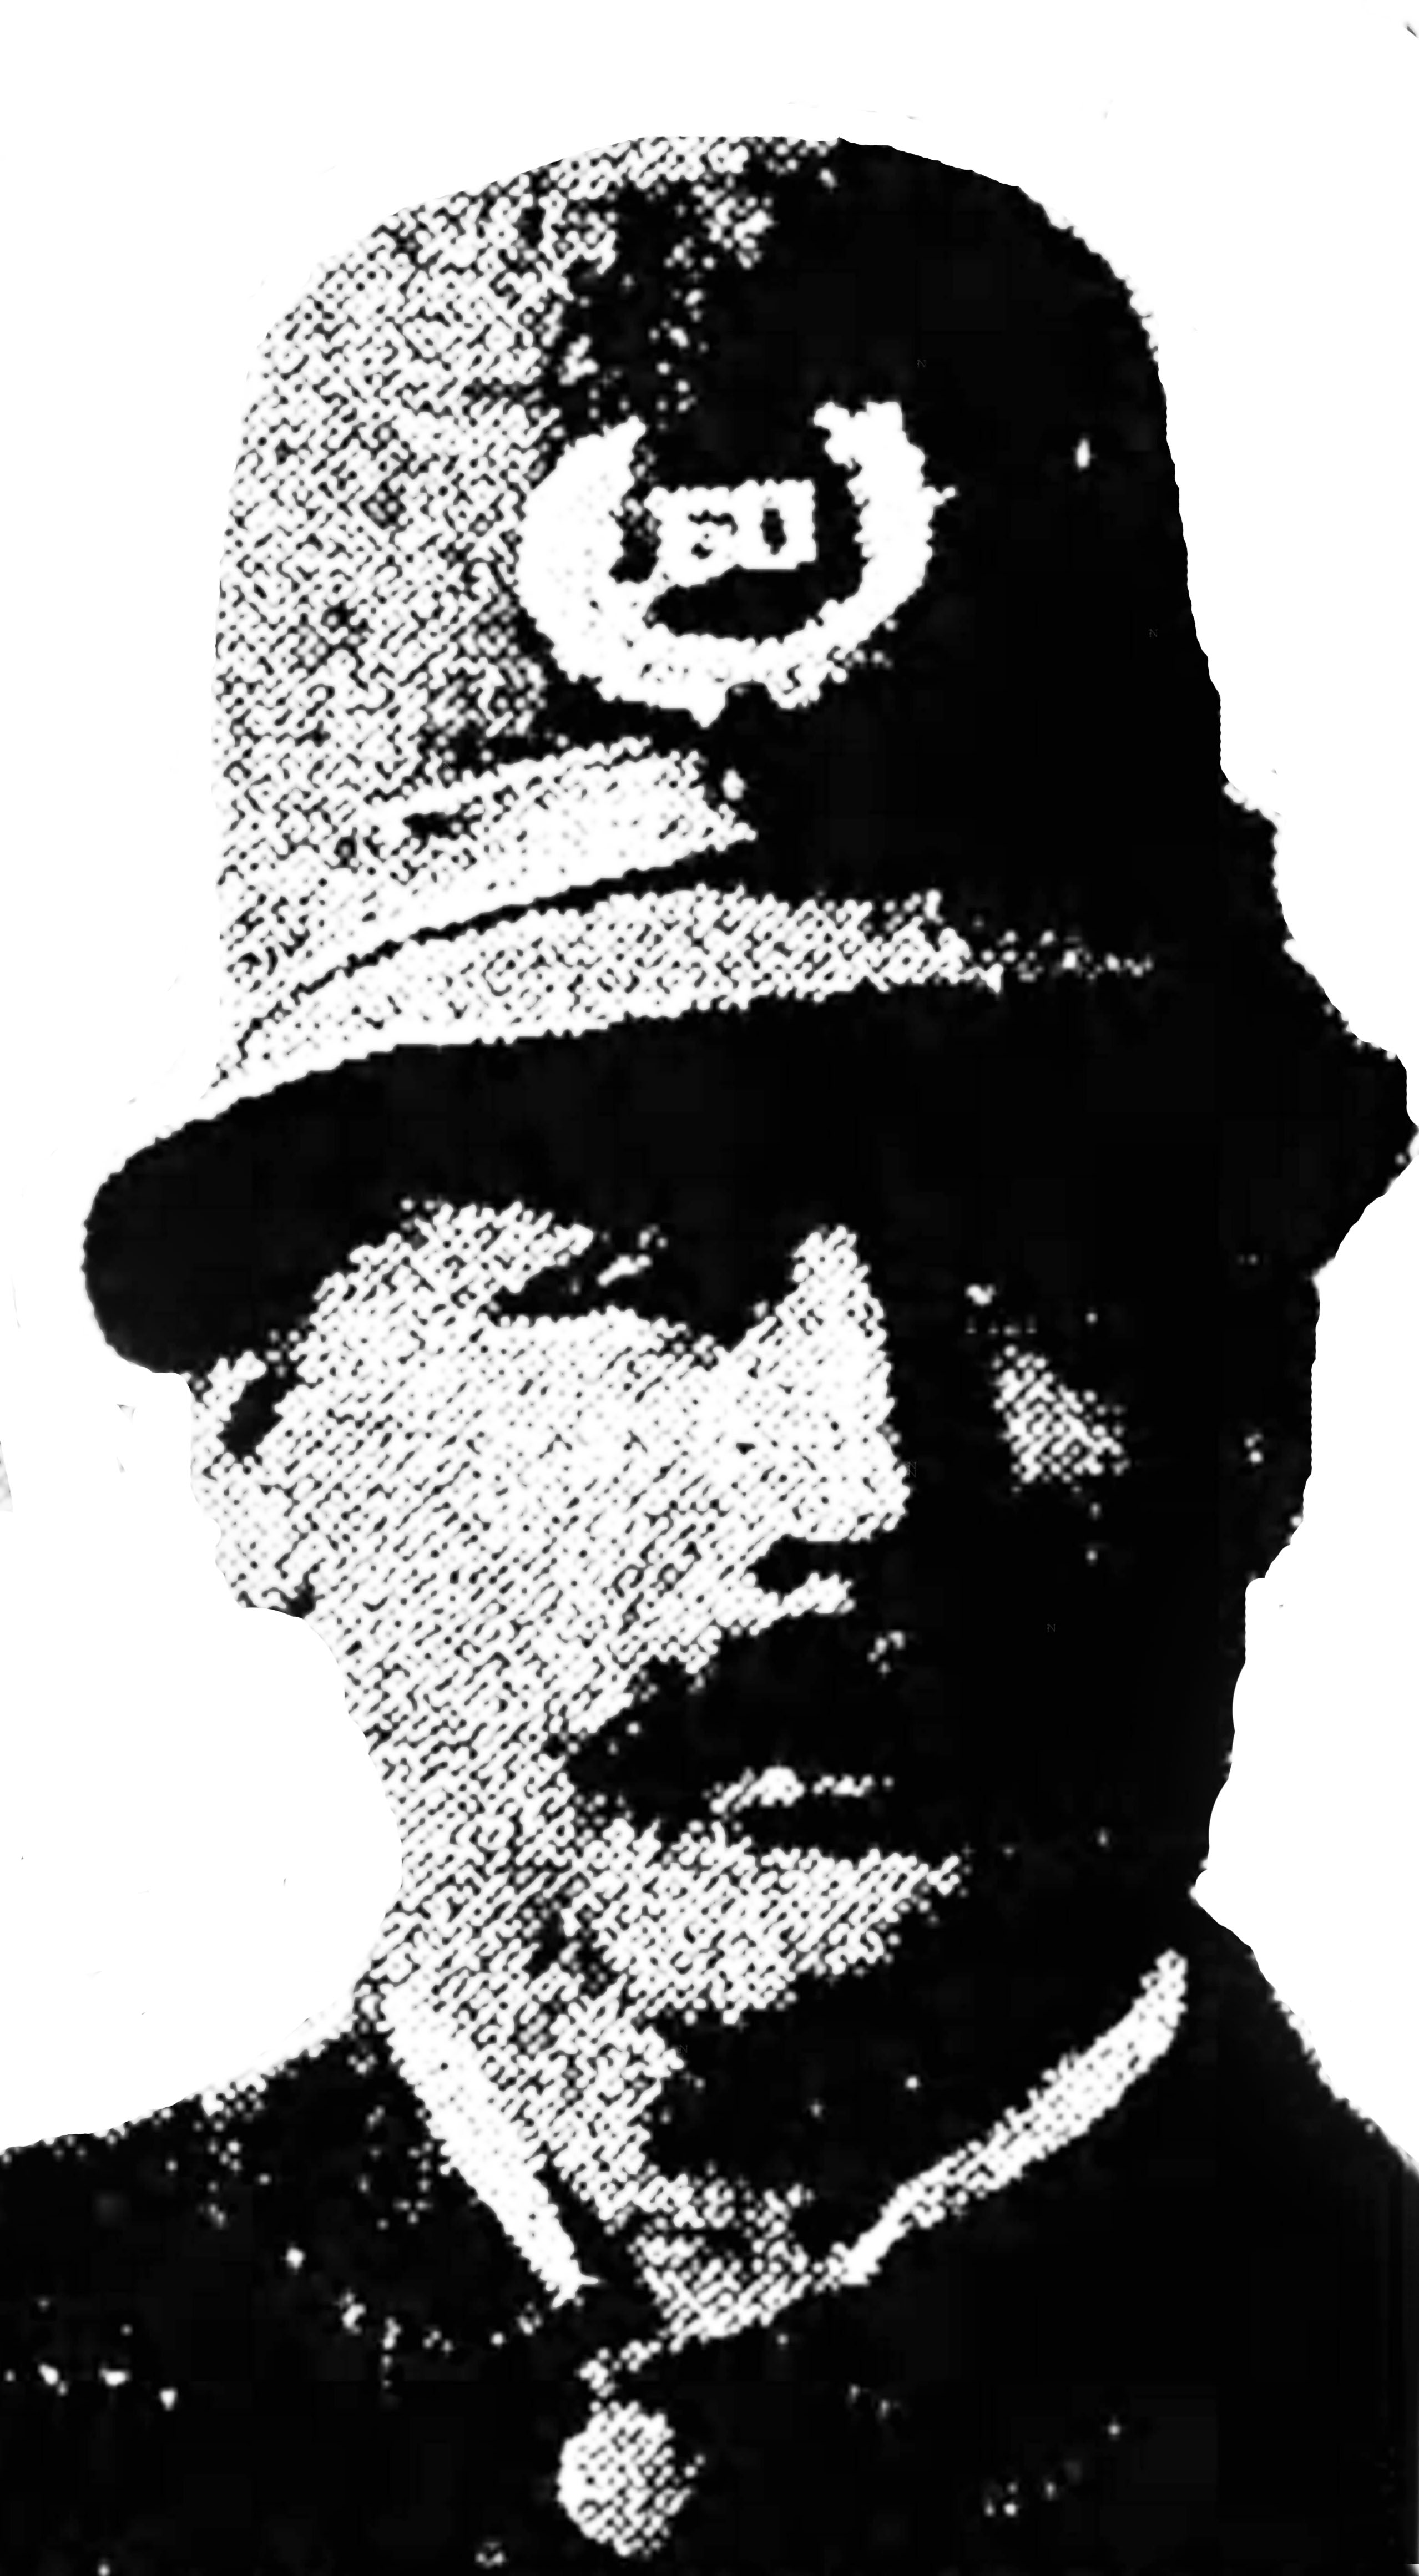 Policeman Ellsworth G. Deitz | Bridgeport Police Department, Connecticut